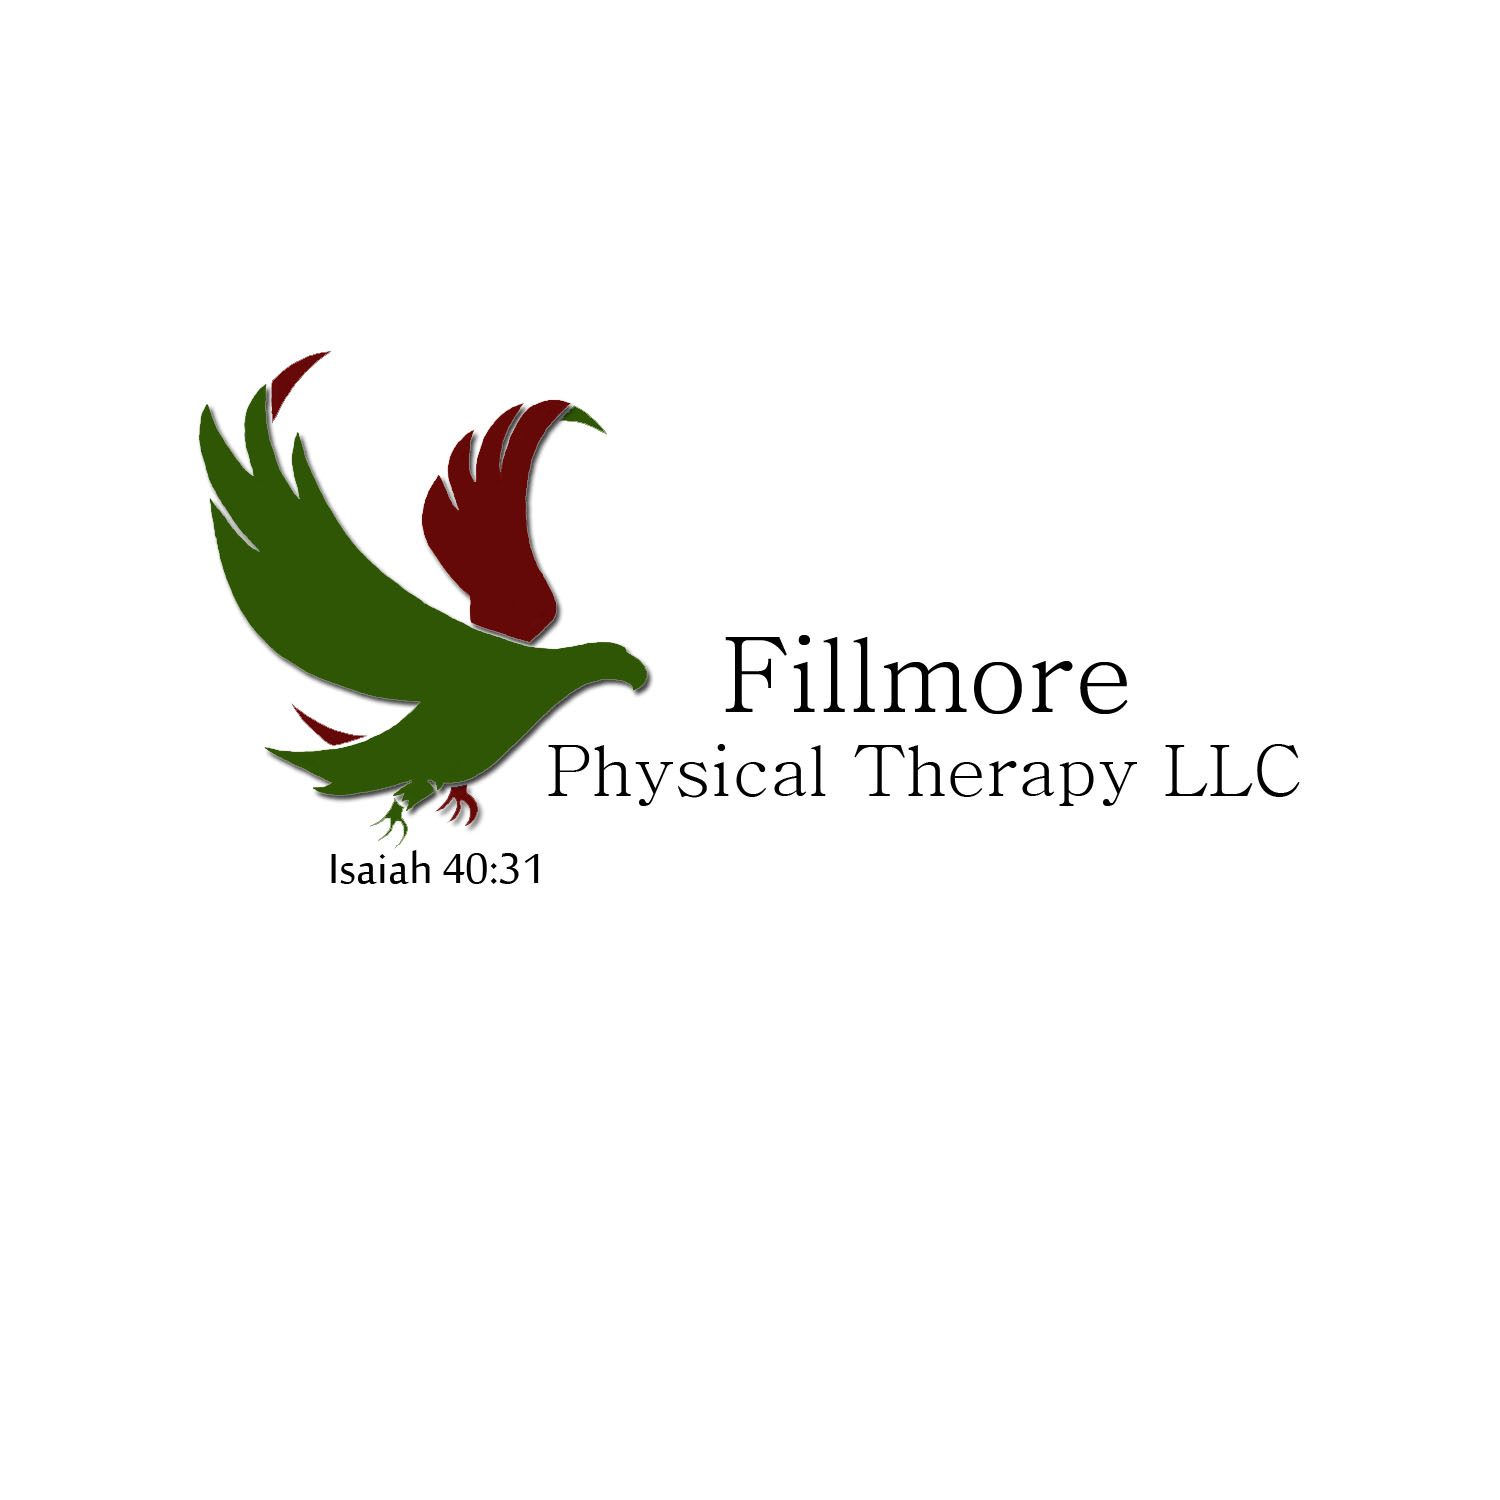 Fillmore Physical Therapy